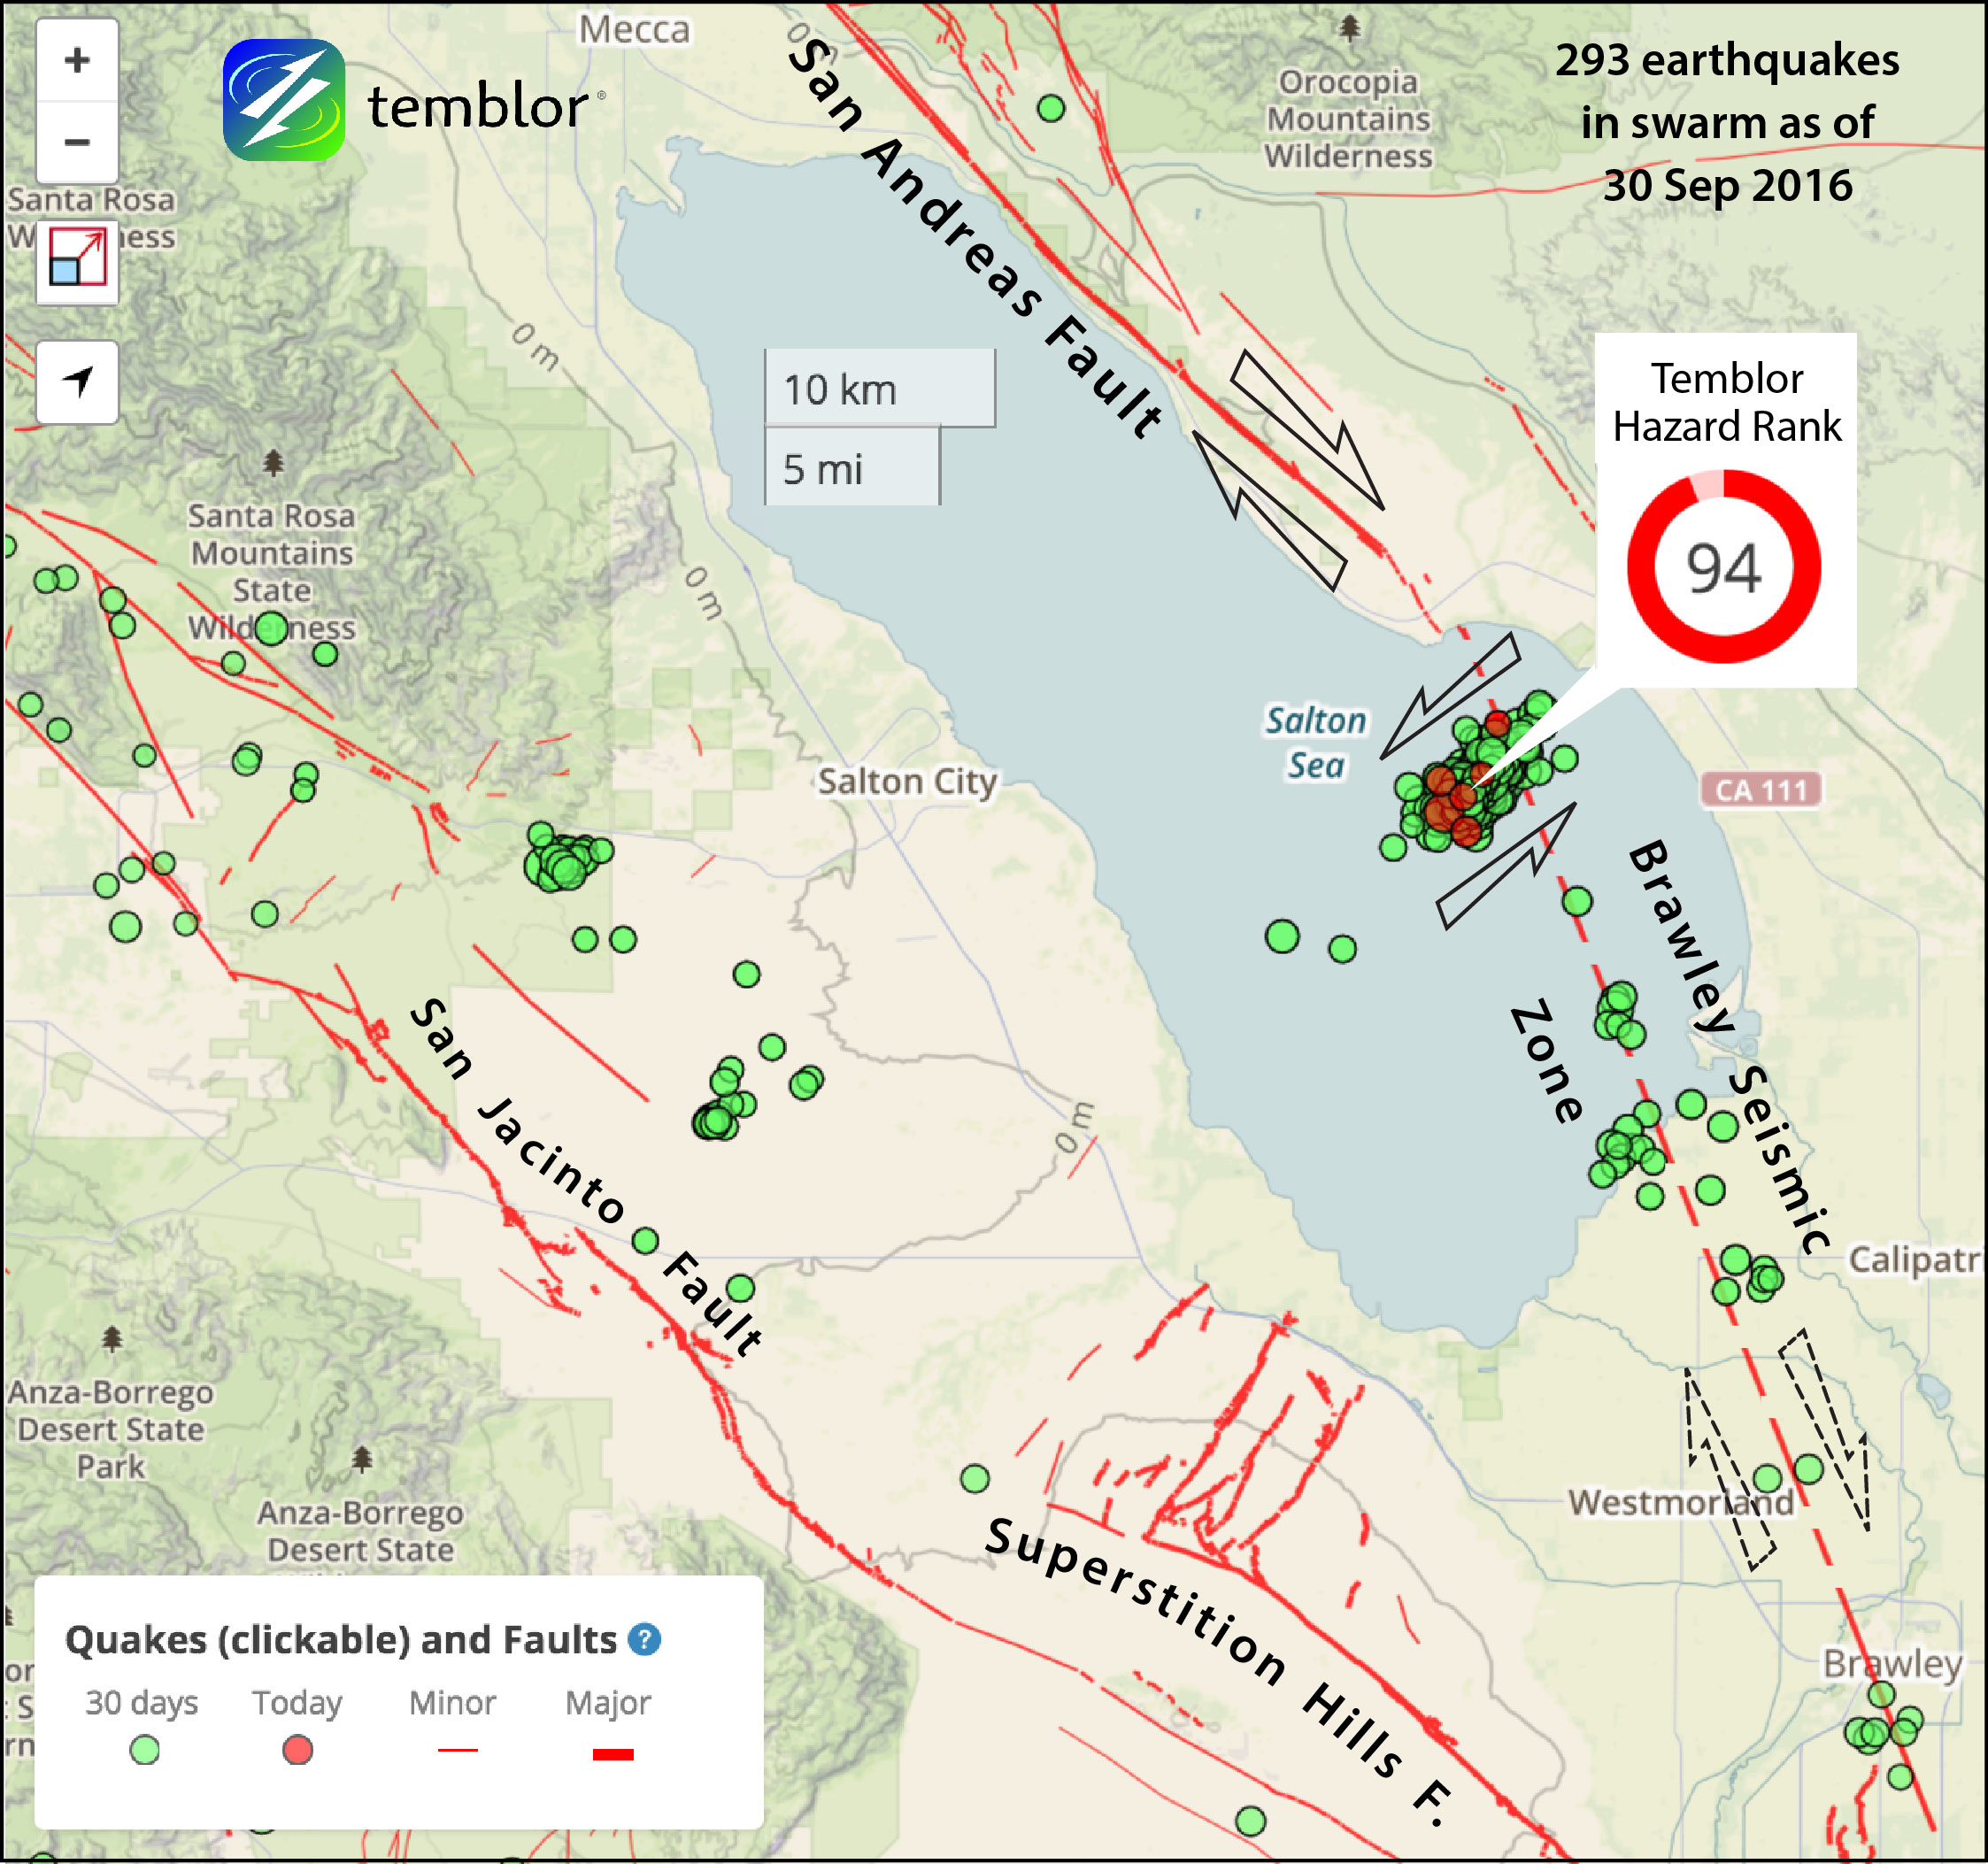 California Issues One-Week Earthquake Advisory For San Andreas Fault - Map Of The San Andreas Fault In Southern California